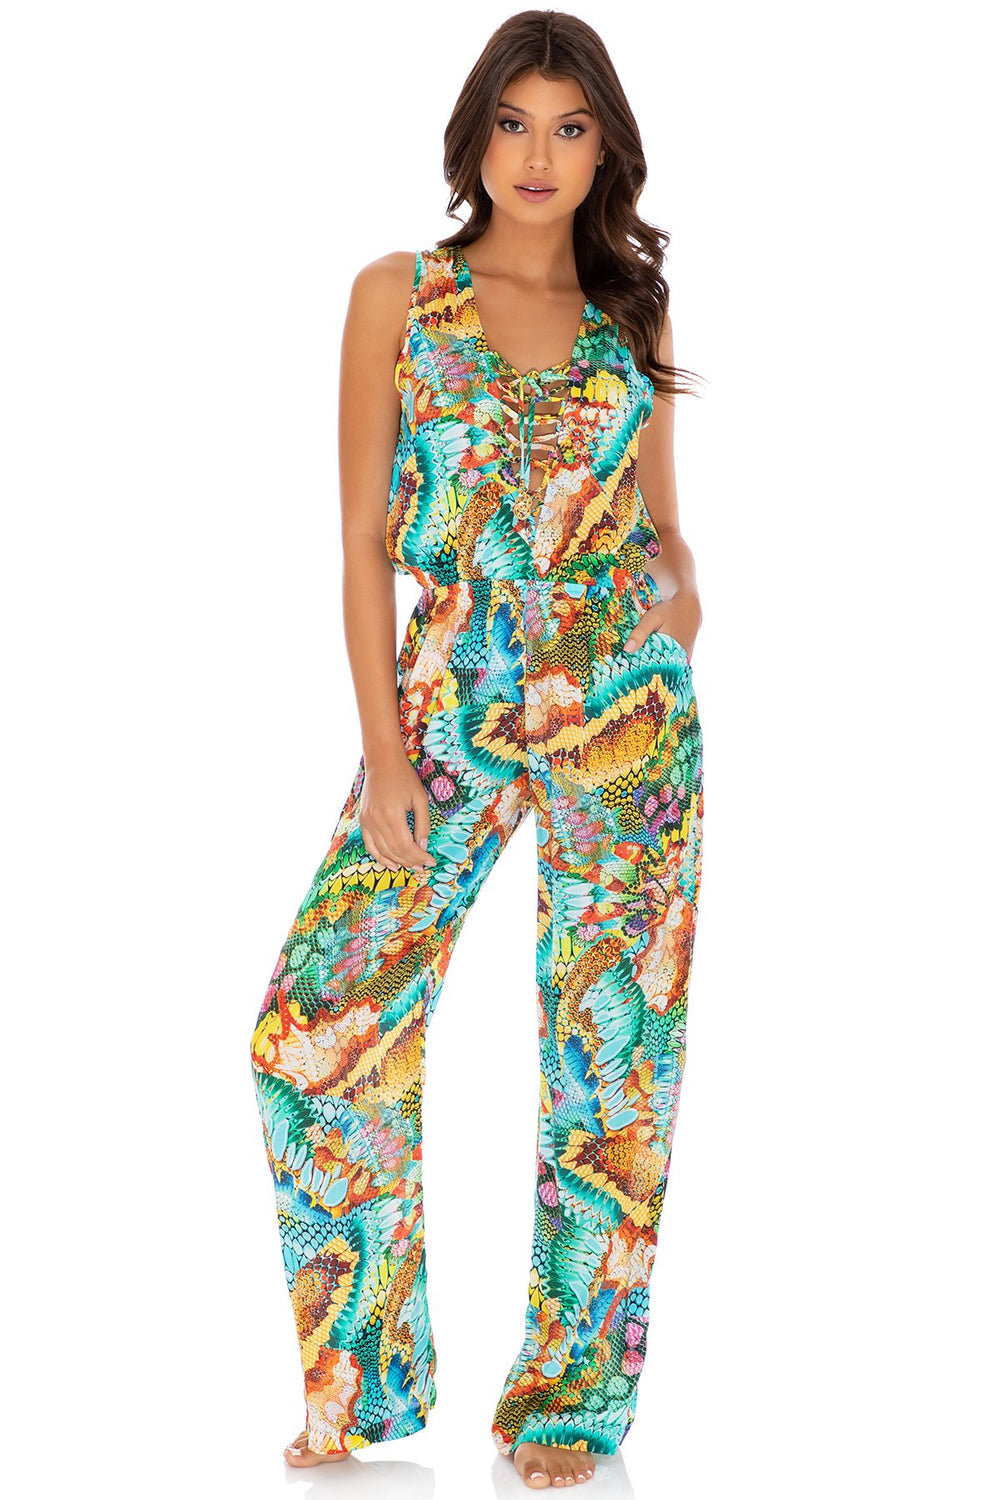 JUST WING IT - Jumpsuit • Multicolor